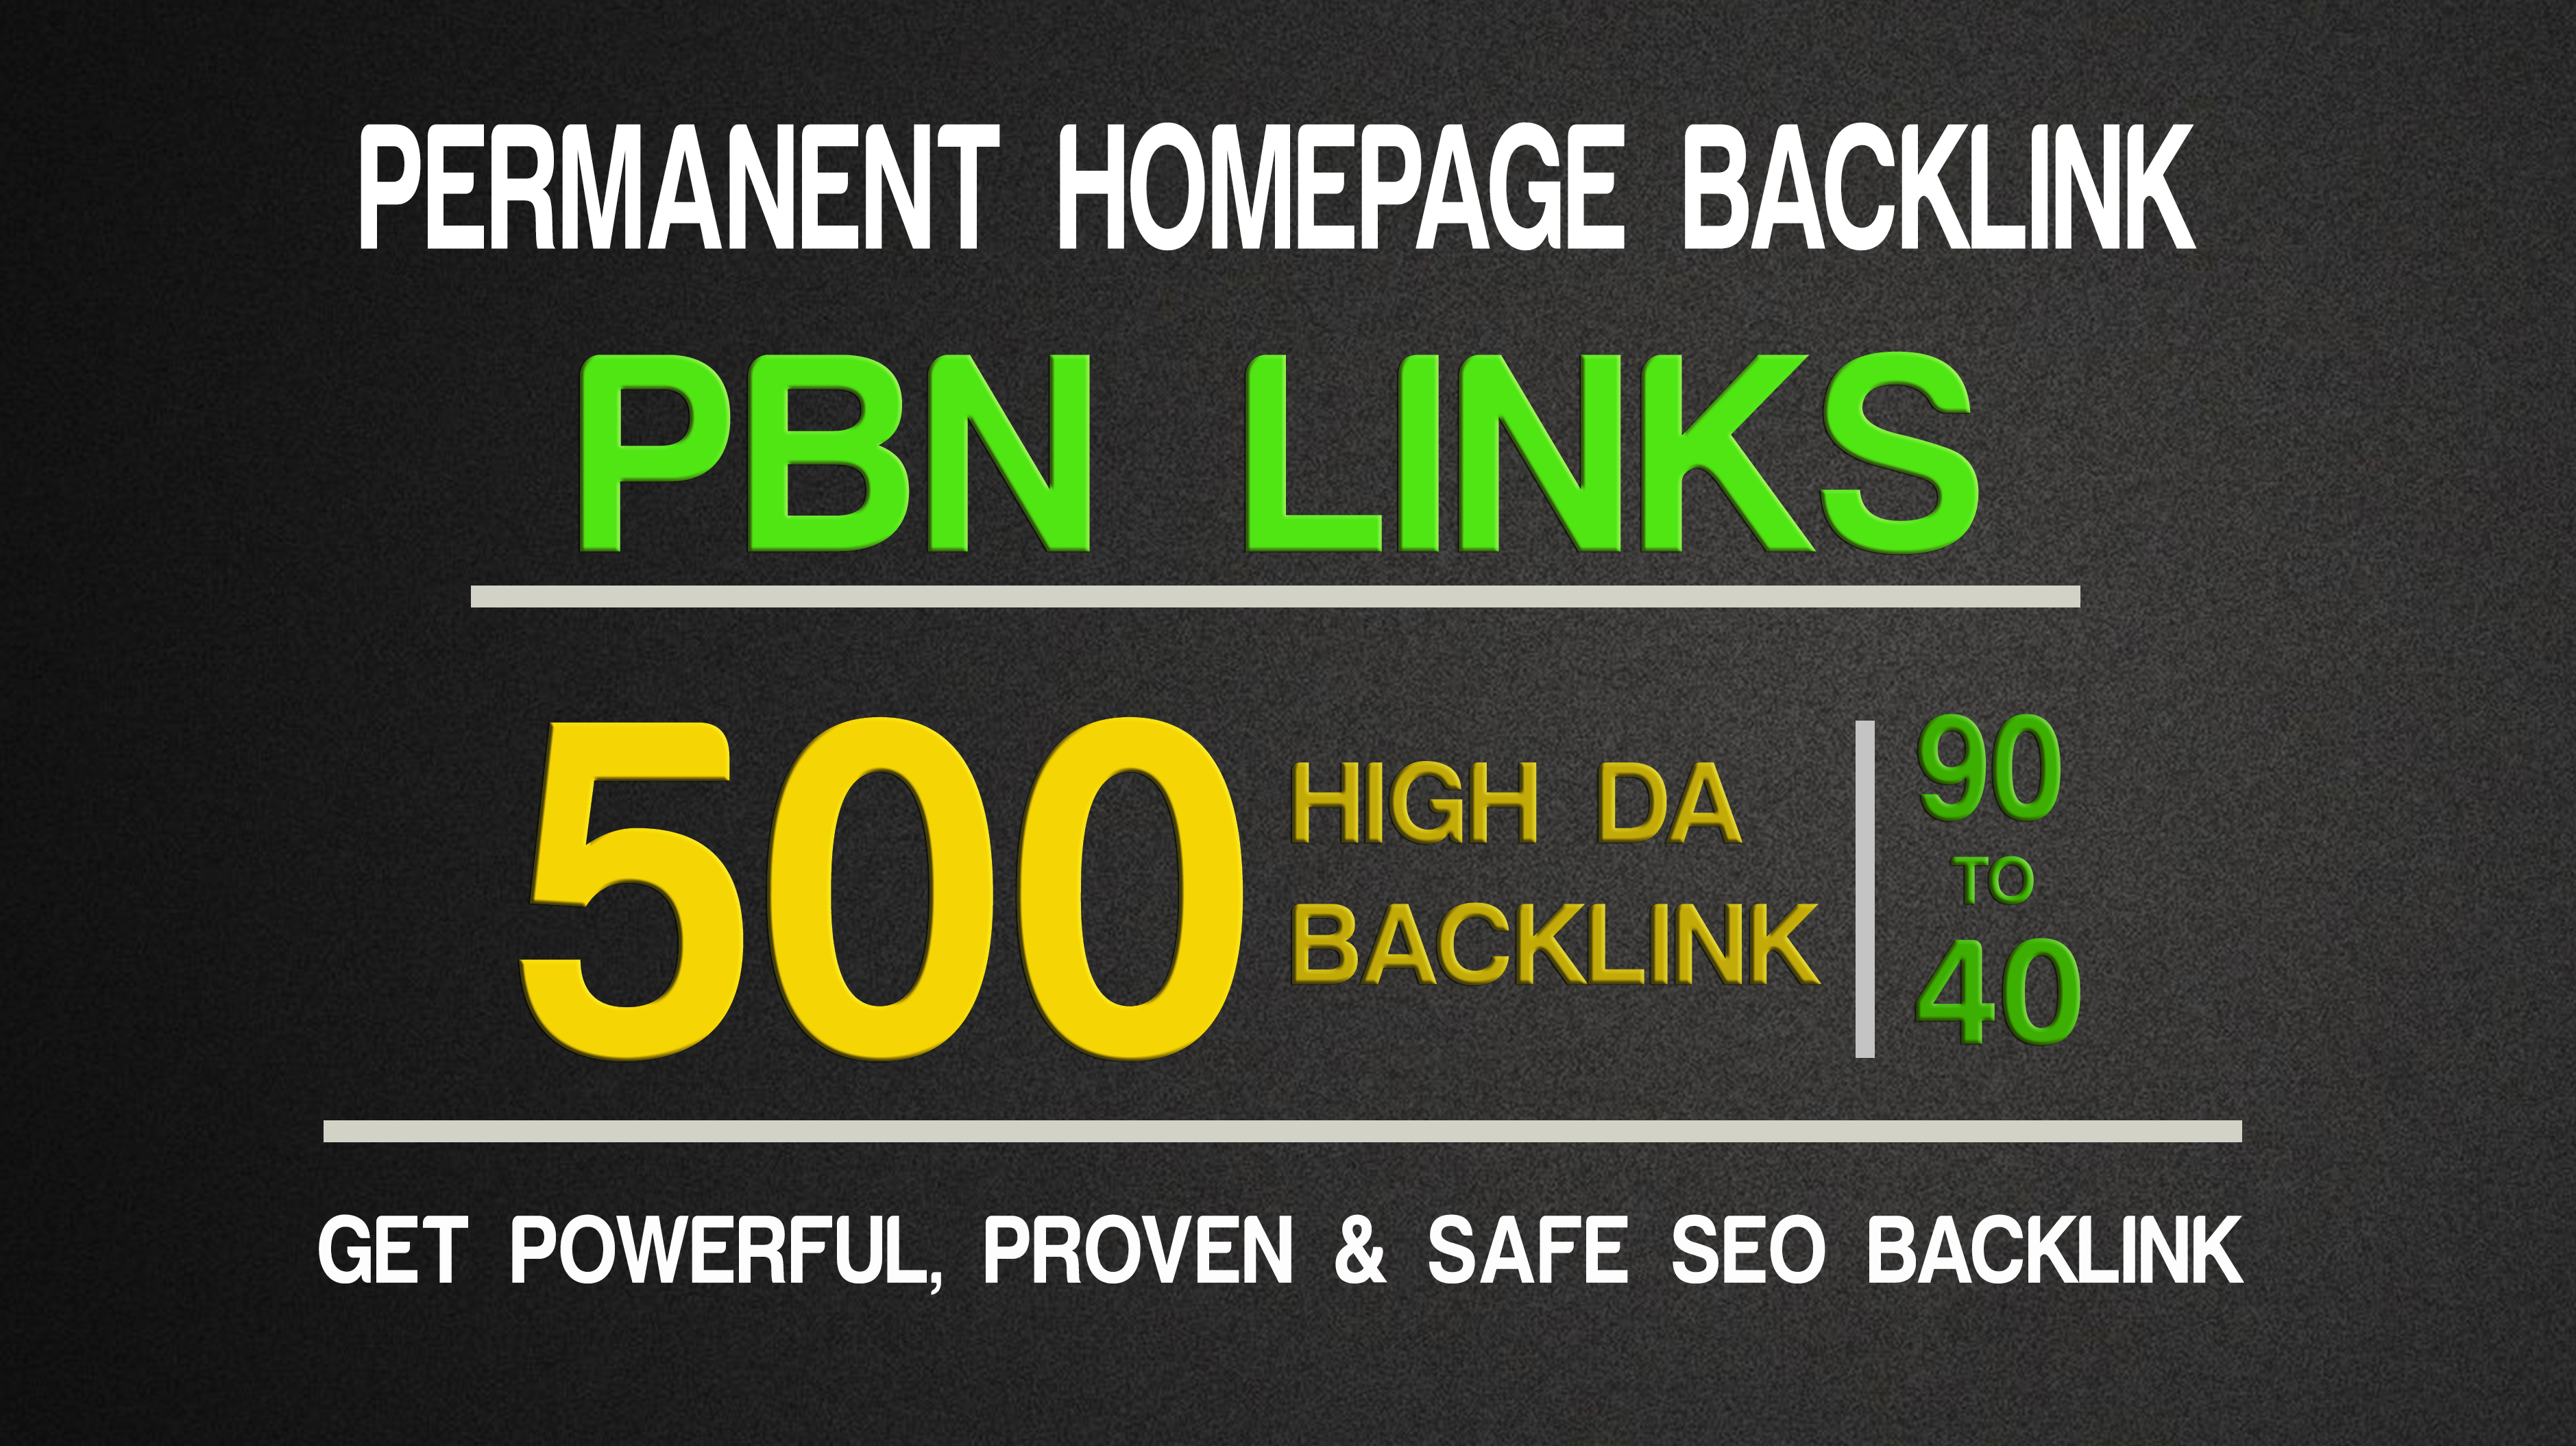 Get Extream 500 Parmanent BacklinK and PBN with high DA PA on your HomePage in extraordinary site